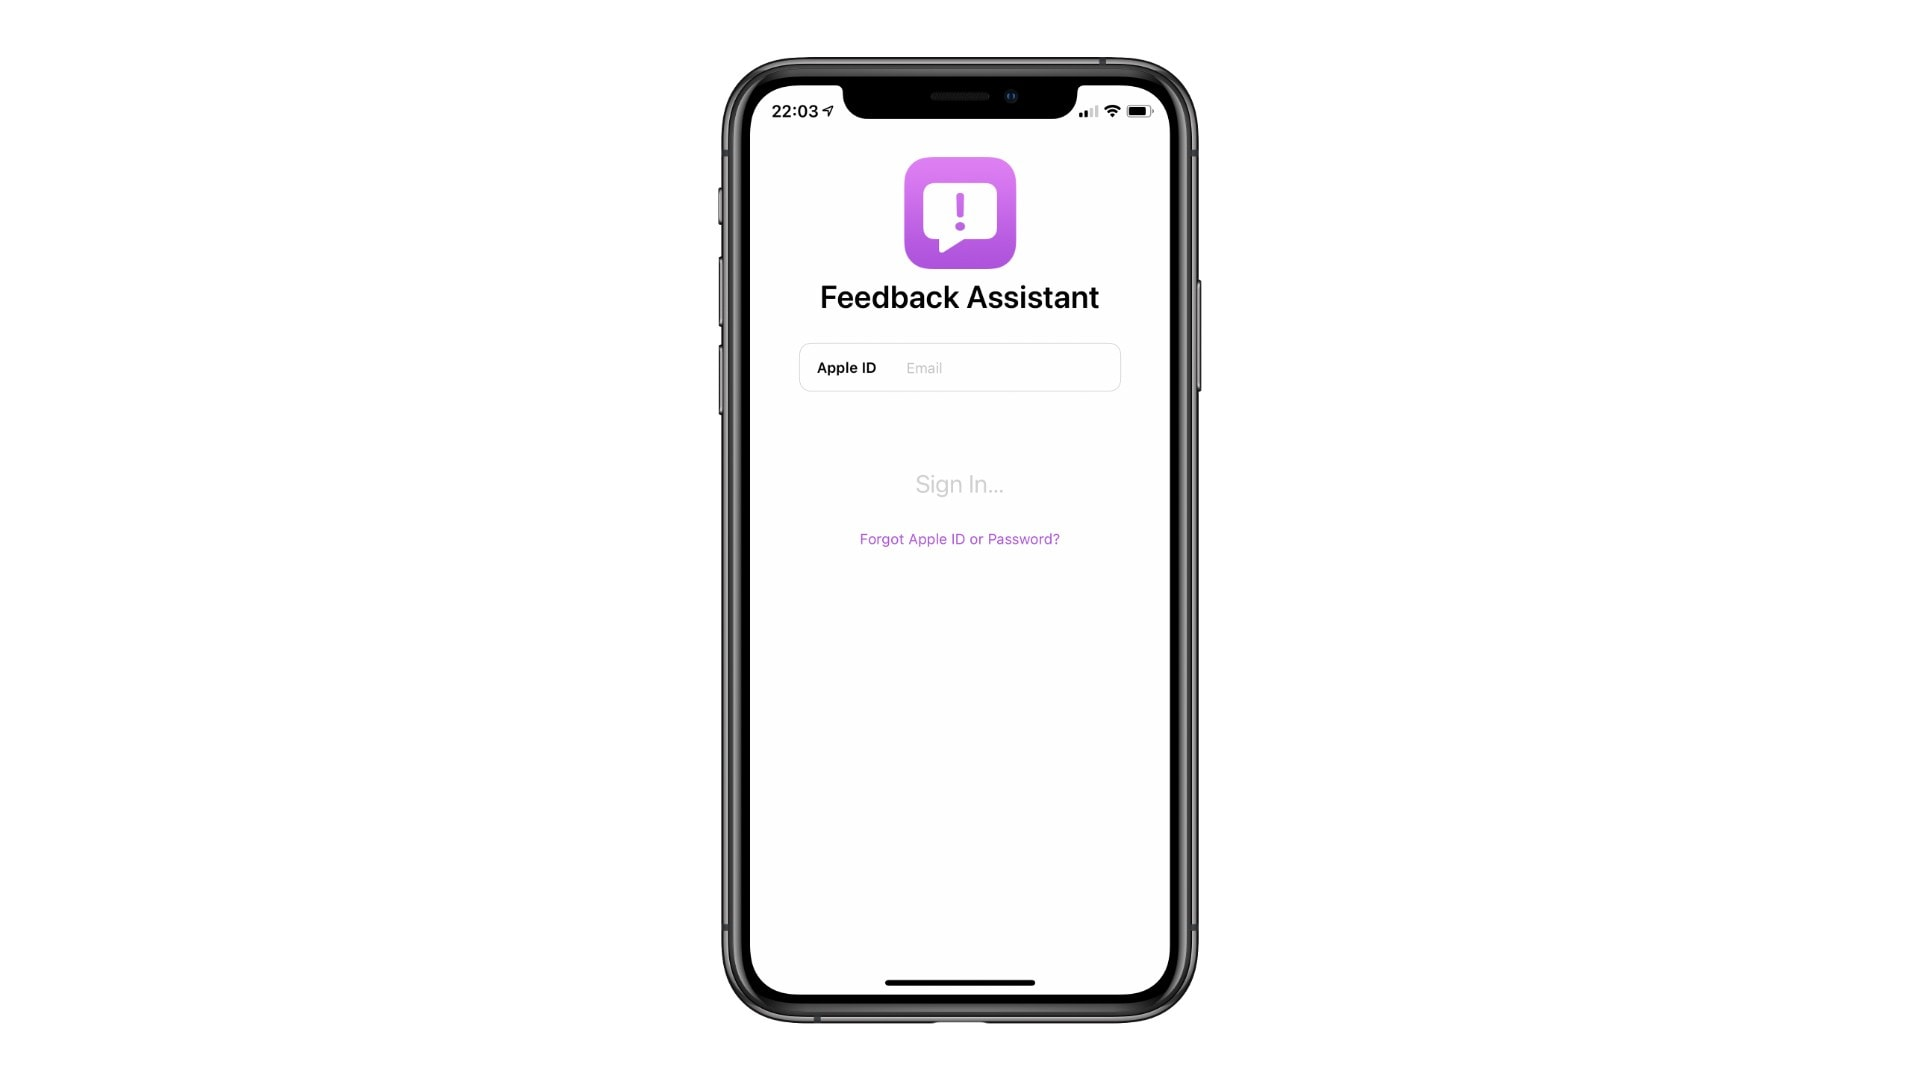 How to report bugs in iOS 14